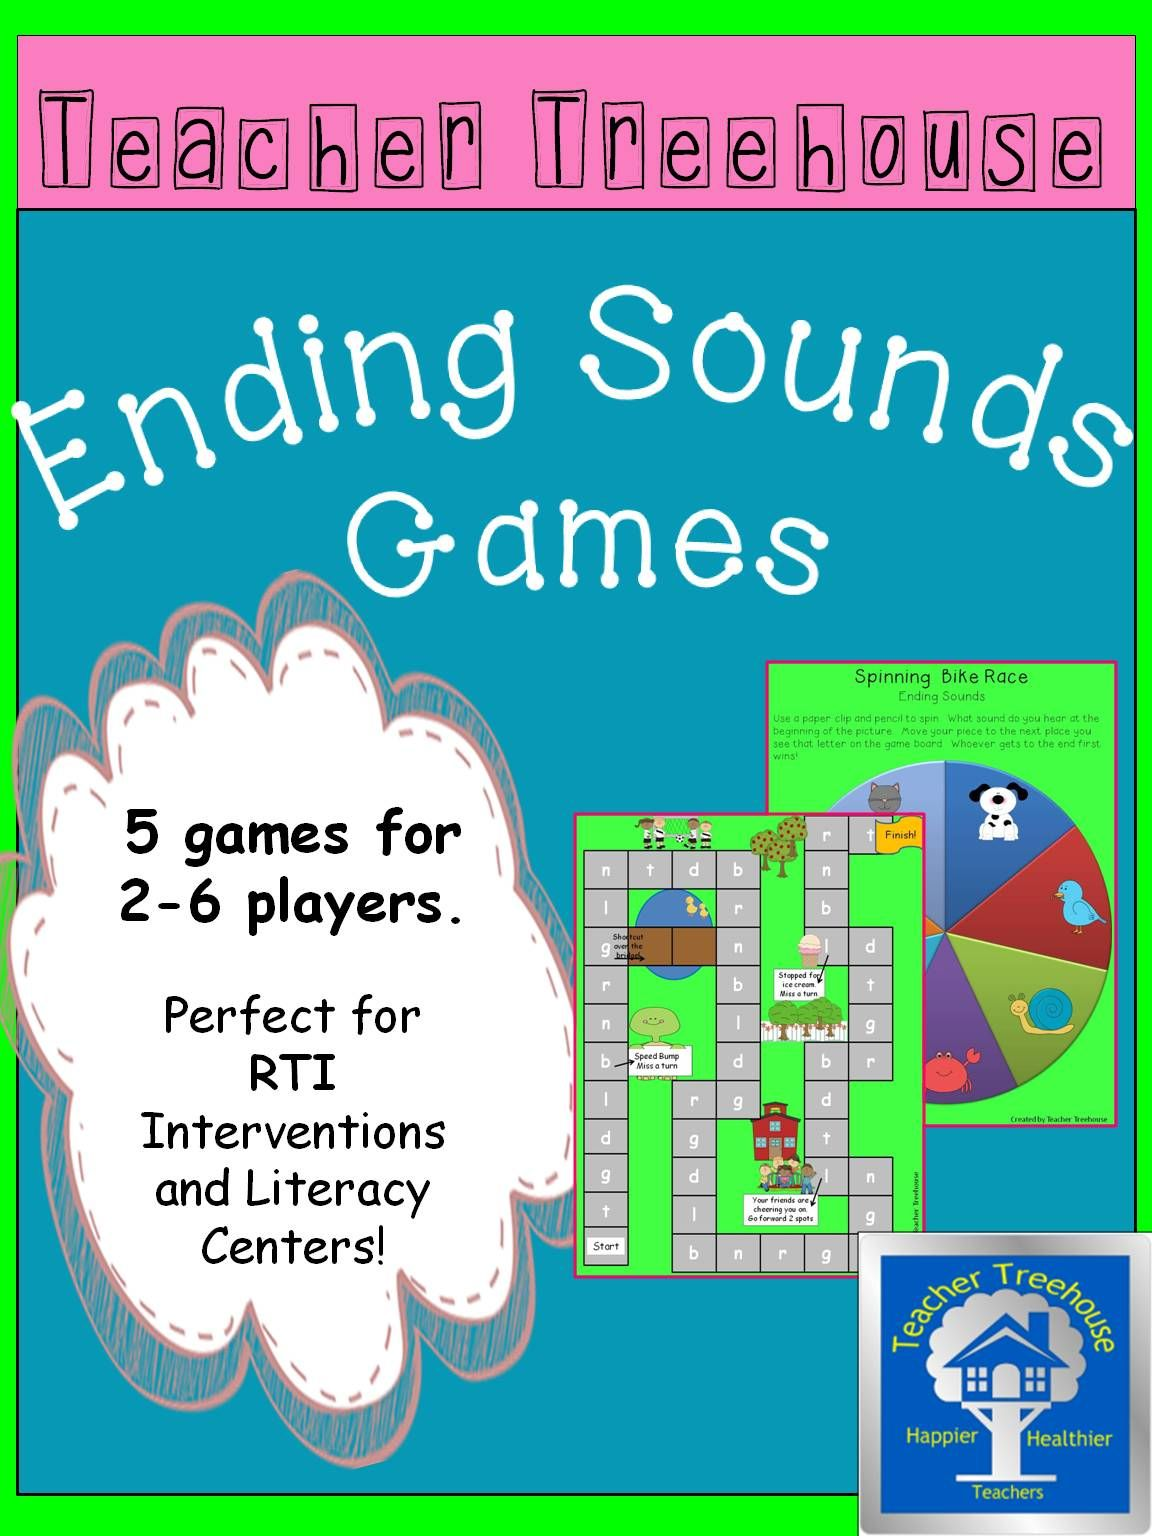 This contains 5 unique games designed for 2-6 players. They are perfect for RTI Interventions and Literacy Centers. The games are all in color and include instructions.